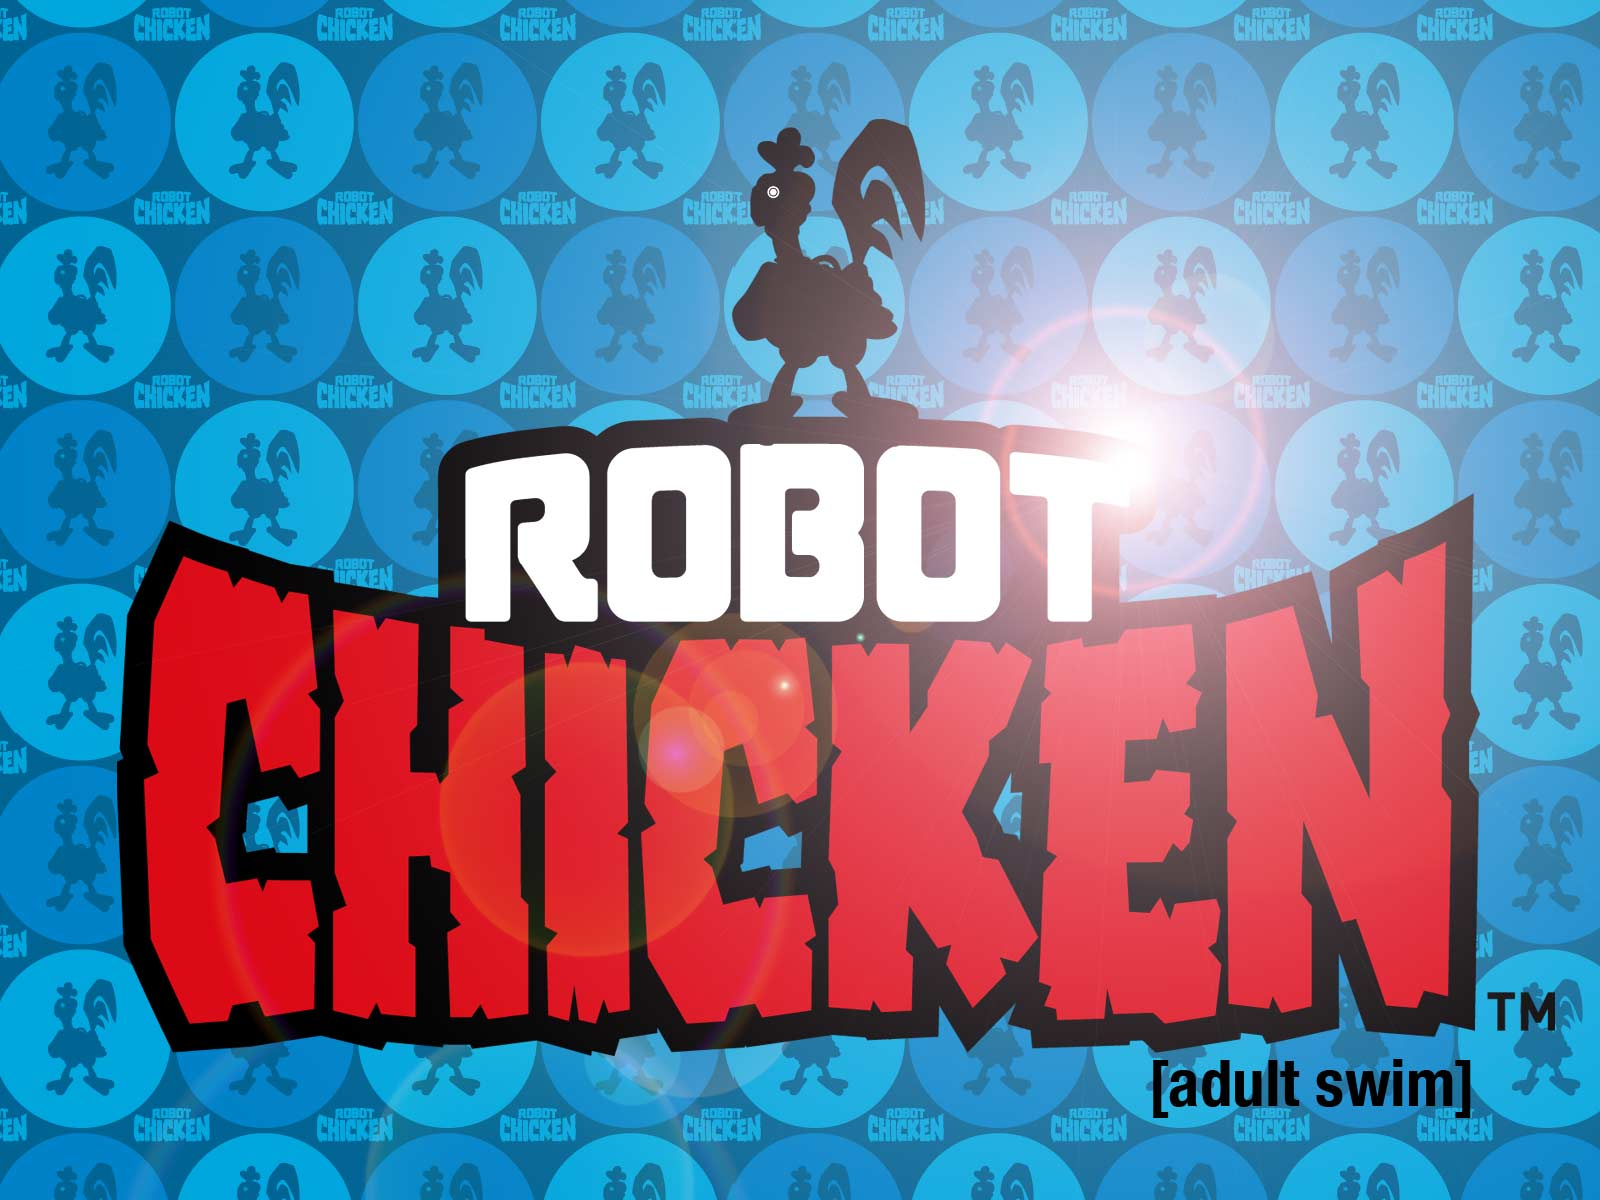 robotchicken-936422